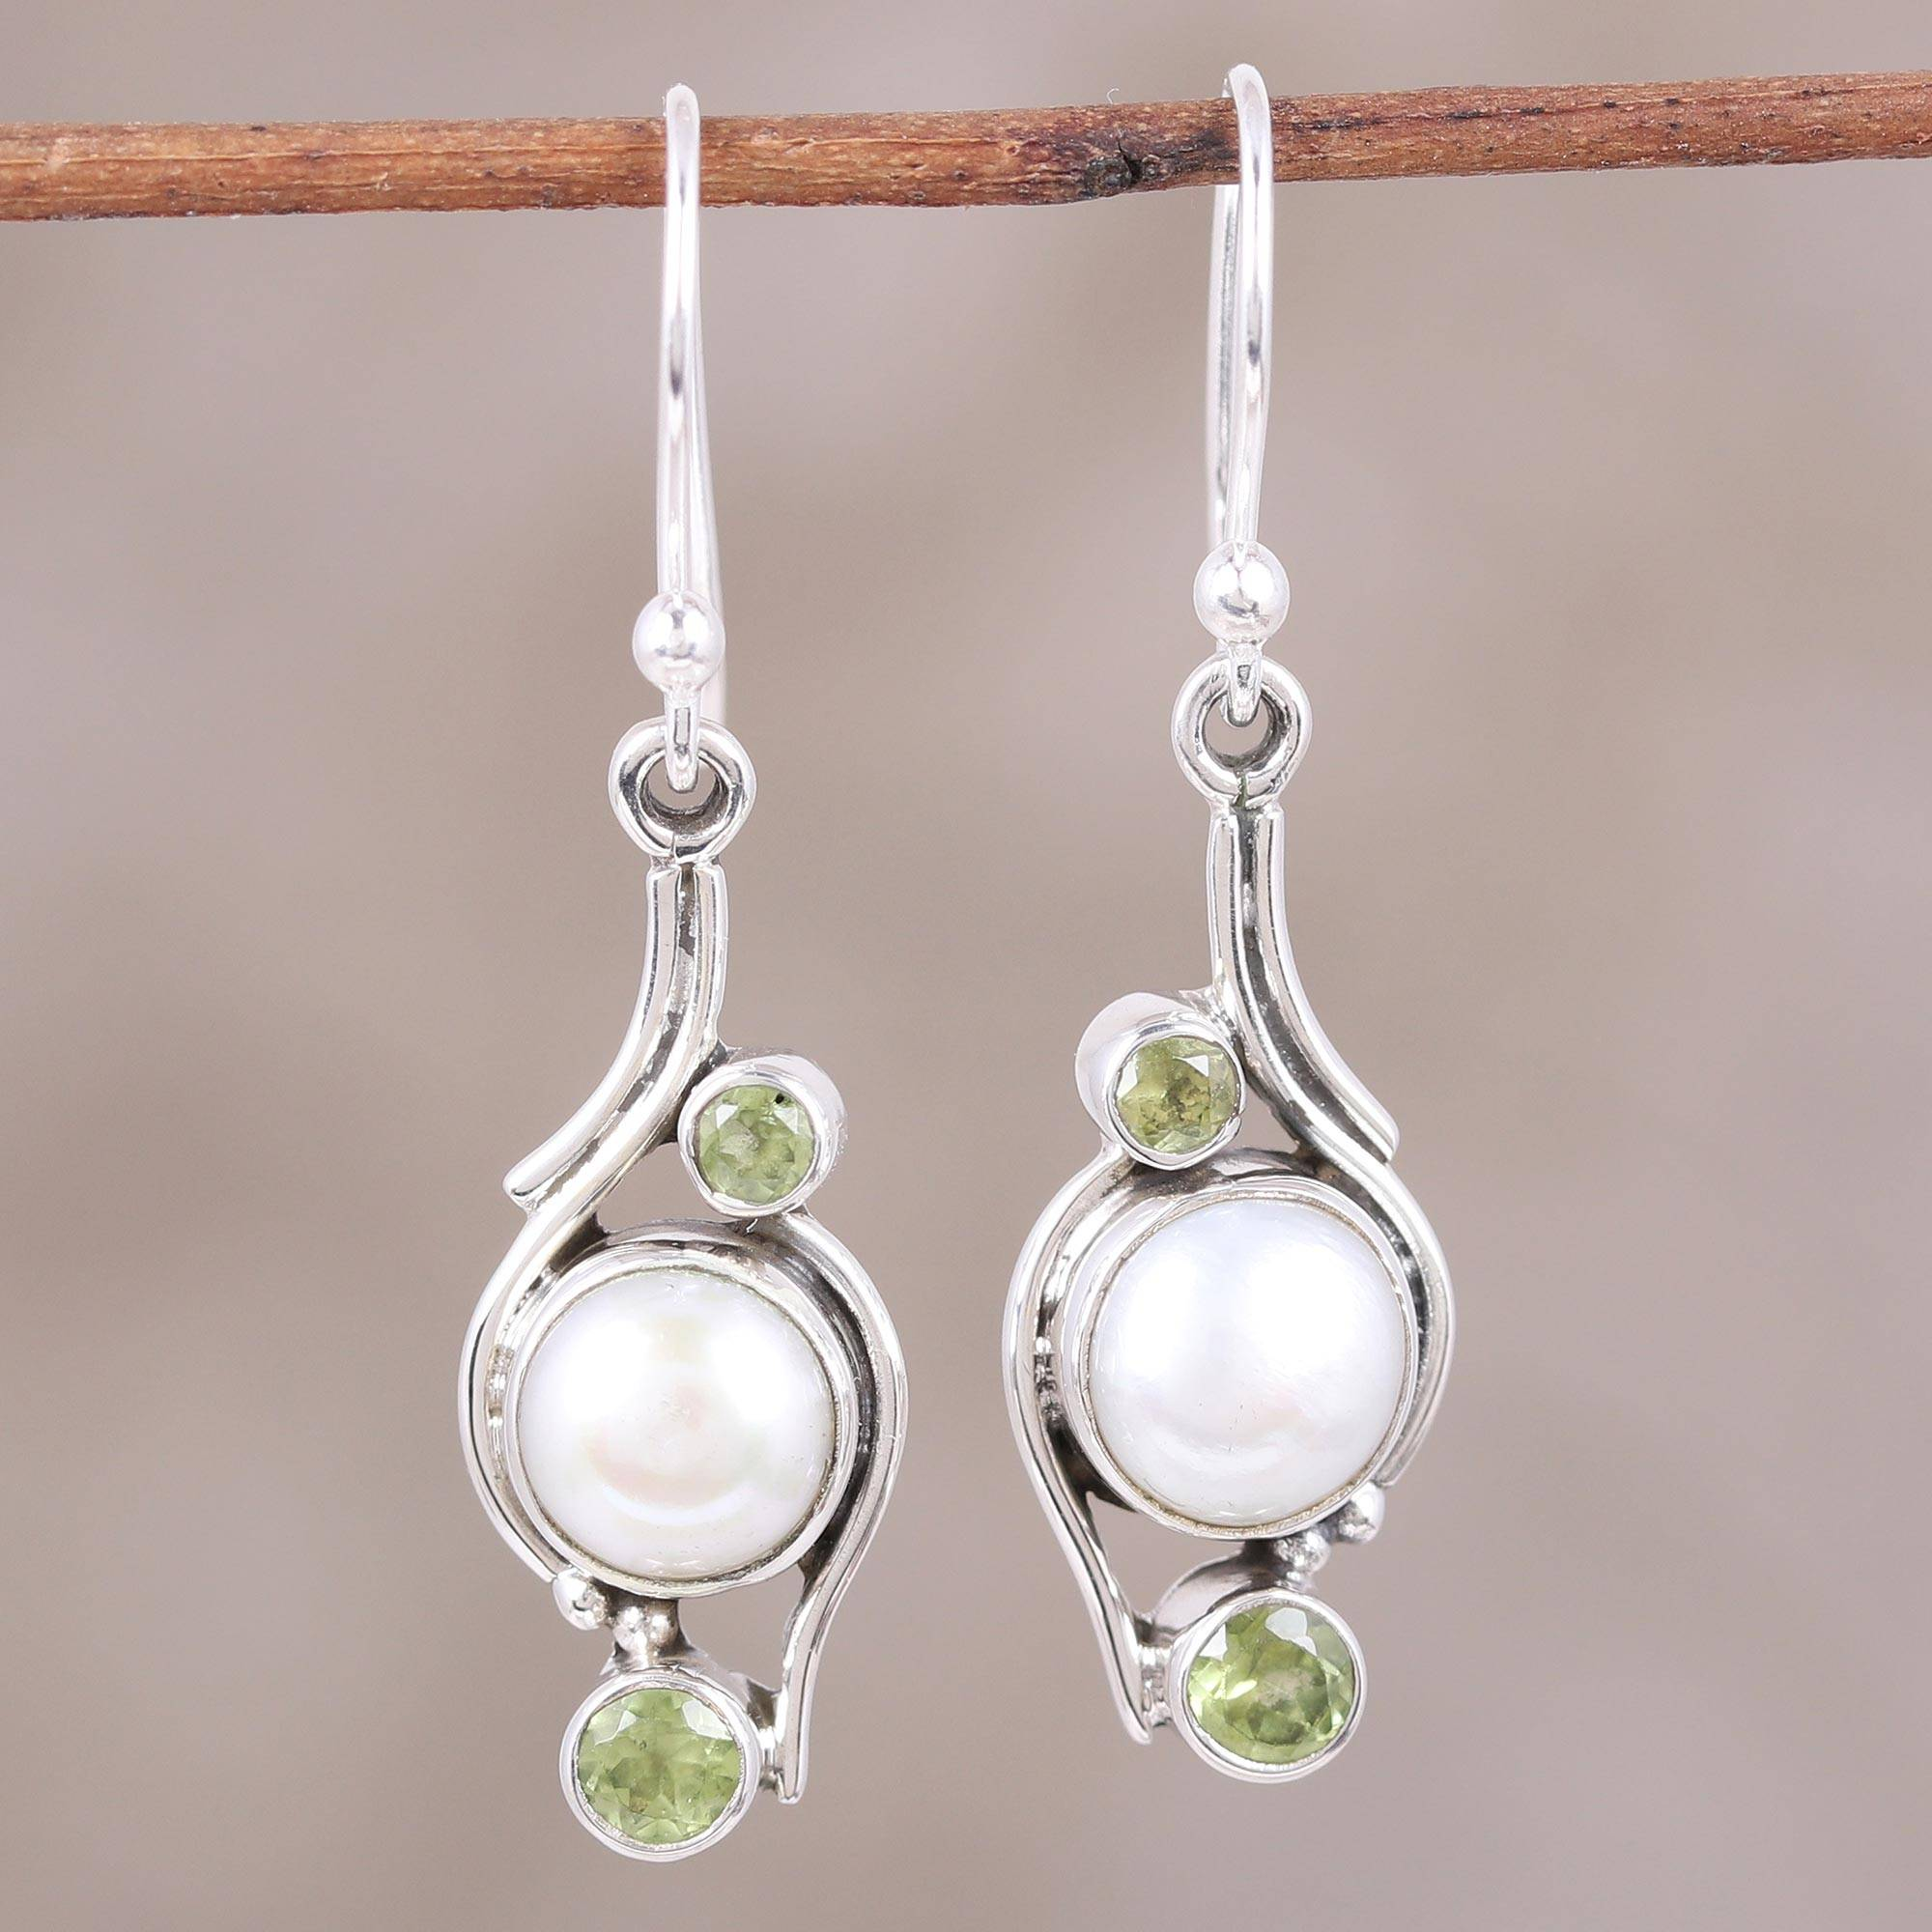 Peridot gemstone and Elegant FreshWater Pearl Earrings FAB Amethyst